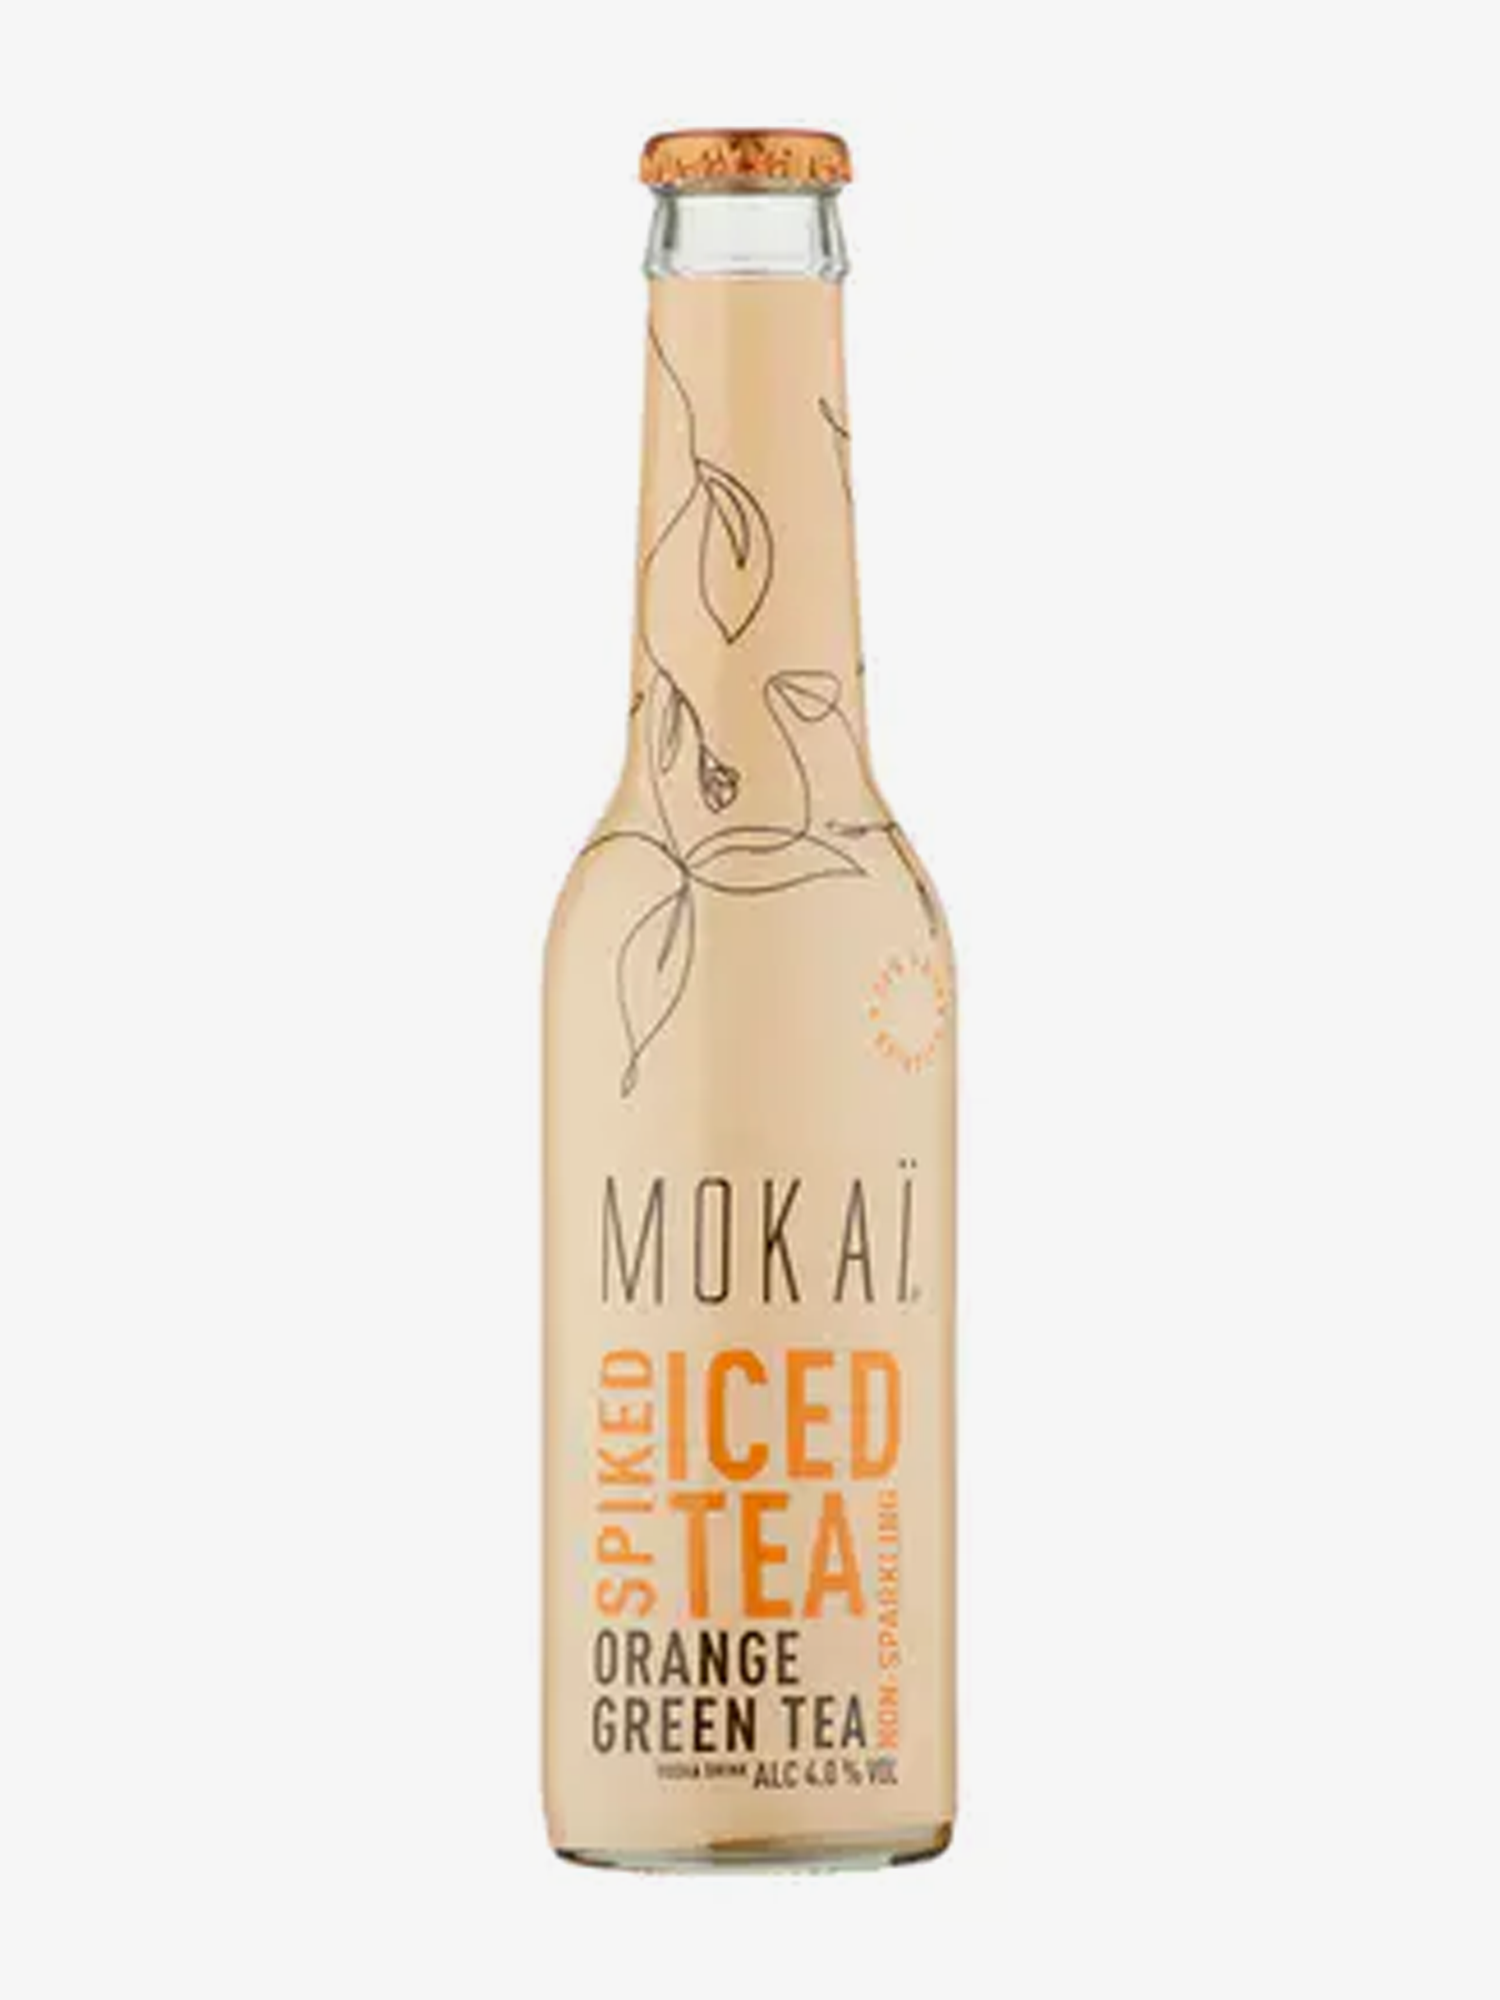 Mokaï Spiked Iced Tea Orange Green tea